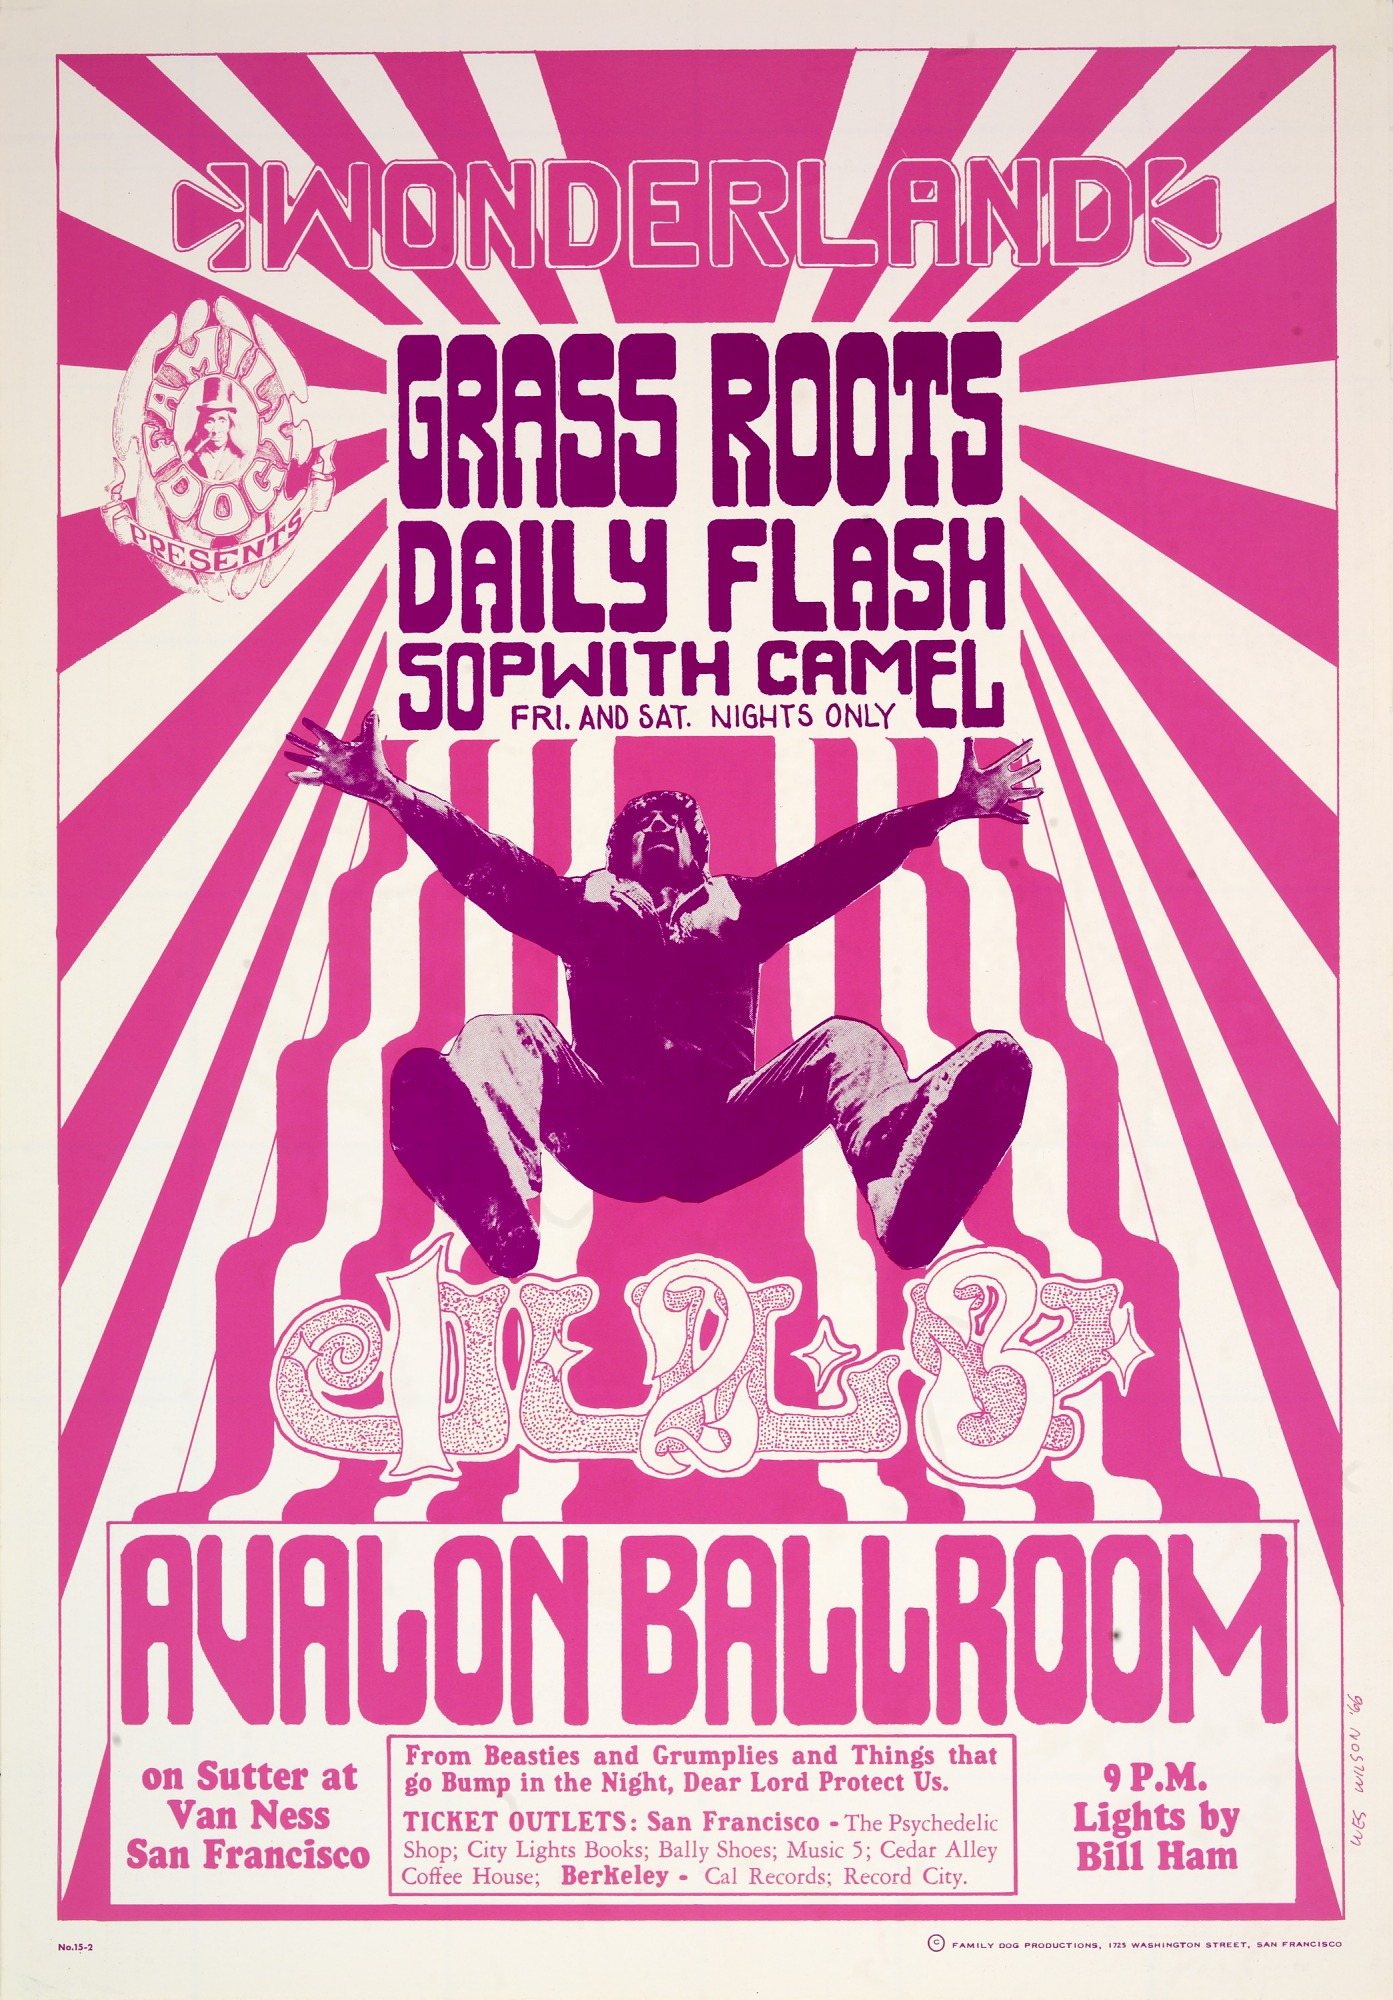 Image for Wonderland (Grass Roots, Daily Flash...Avalon Ballroom, San Francisco, California 7/1/66-7/3/66)